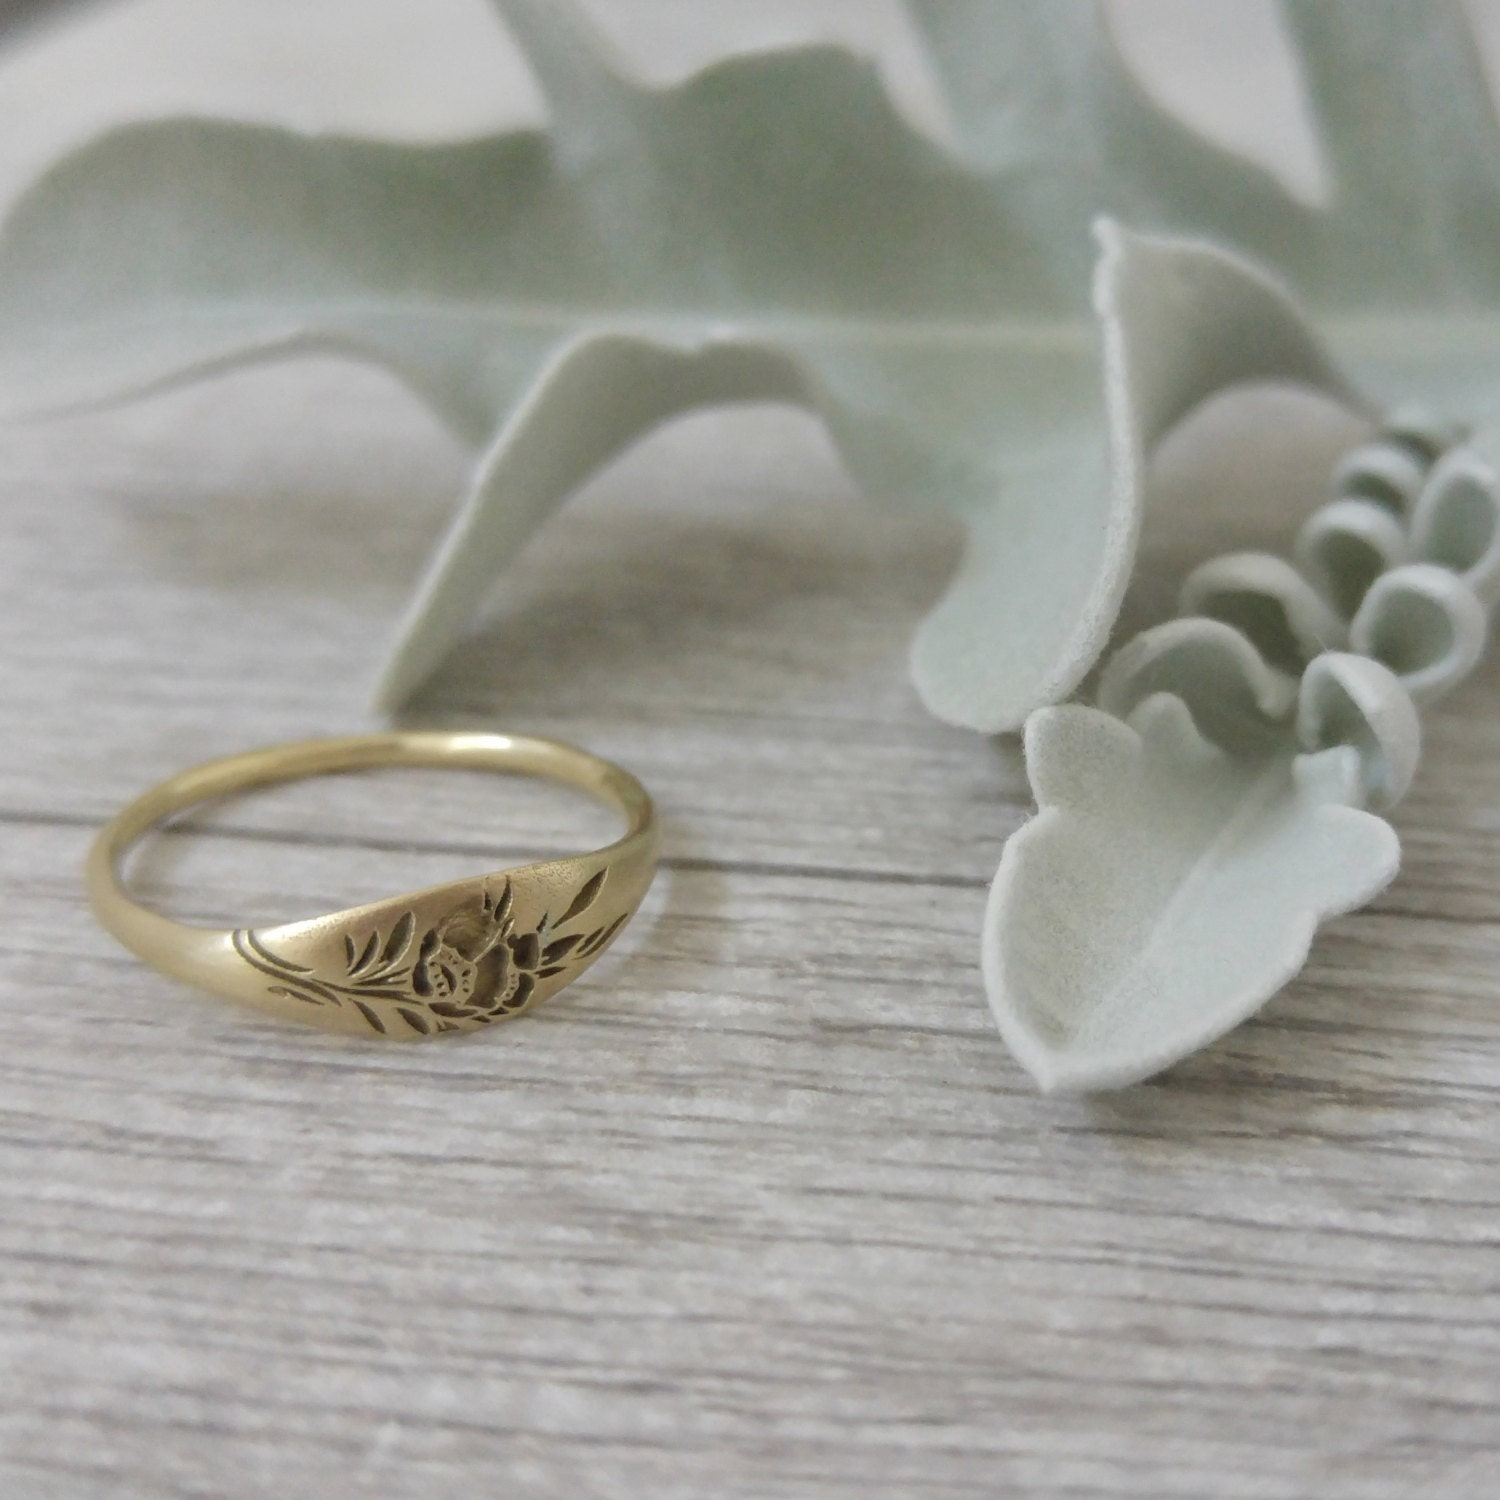 tenley emberly on circa rings sets style the ring skinny everly featuring and collection my fallyn img